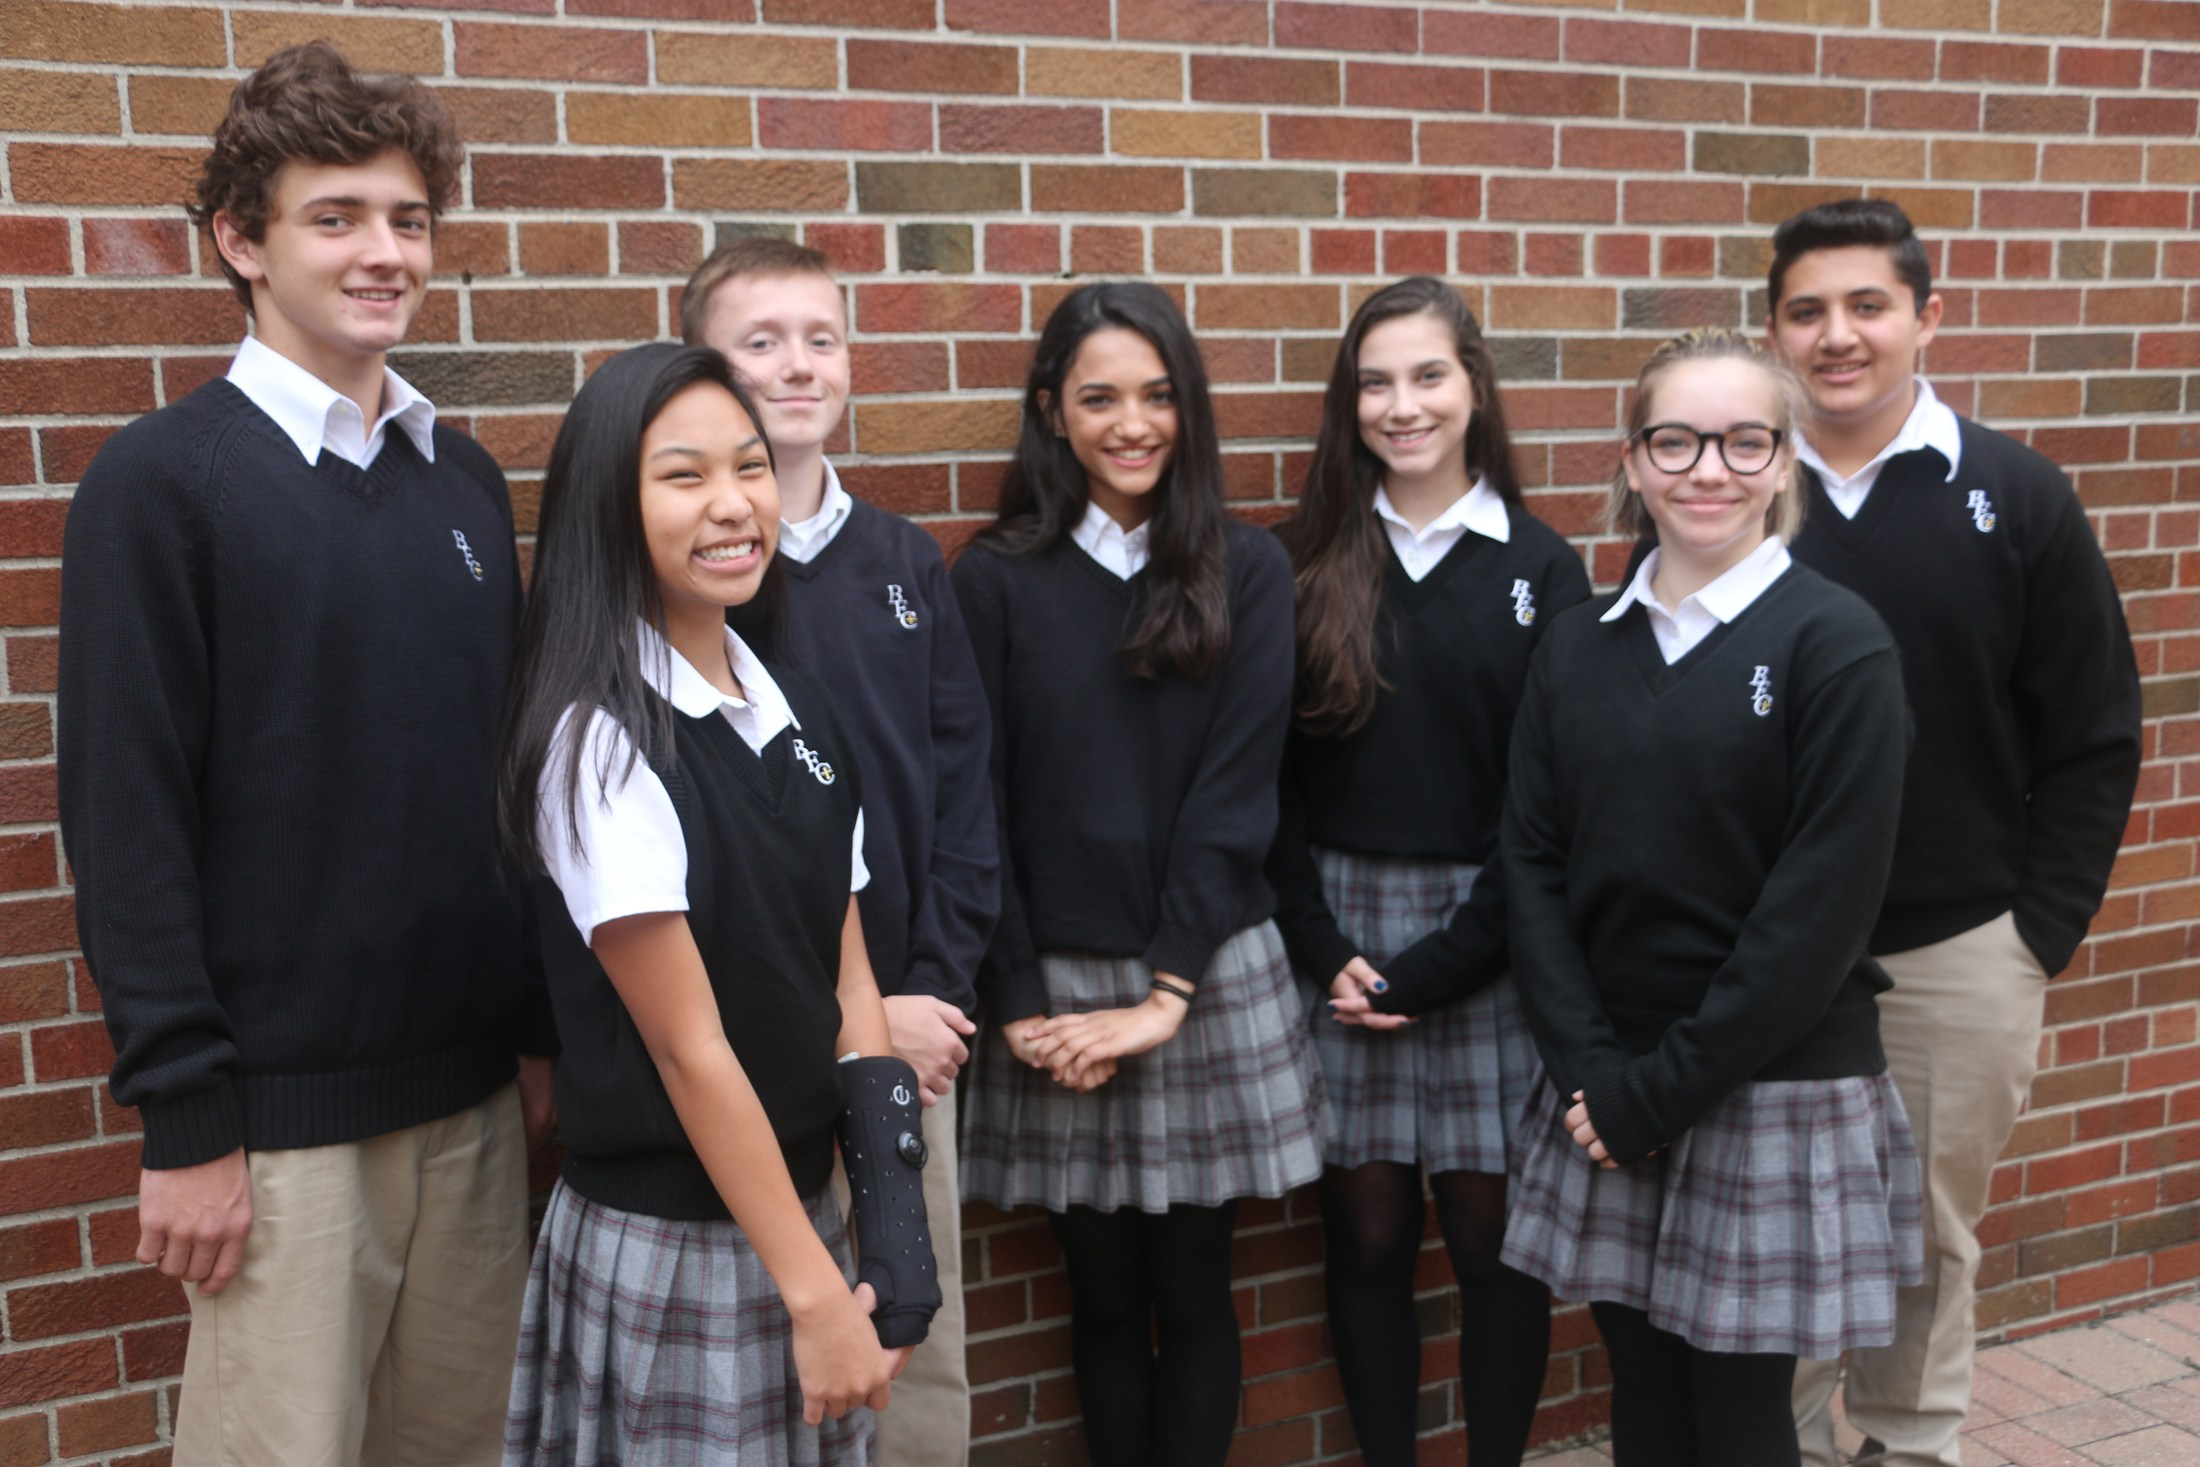 an introduction and a comparison of catholic school and public school Introduction: when it is time to attend school, how will you choose between  i  first main point: the differences between public education.